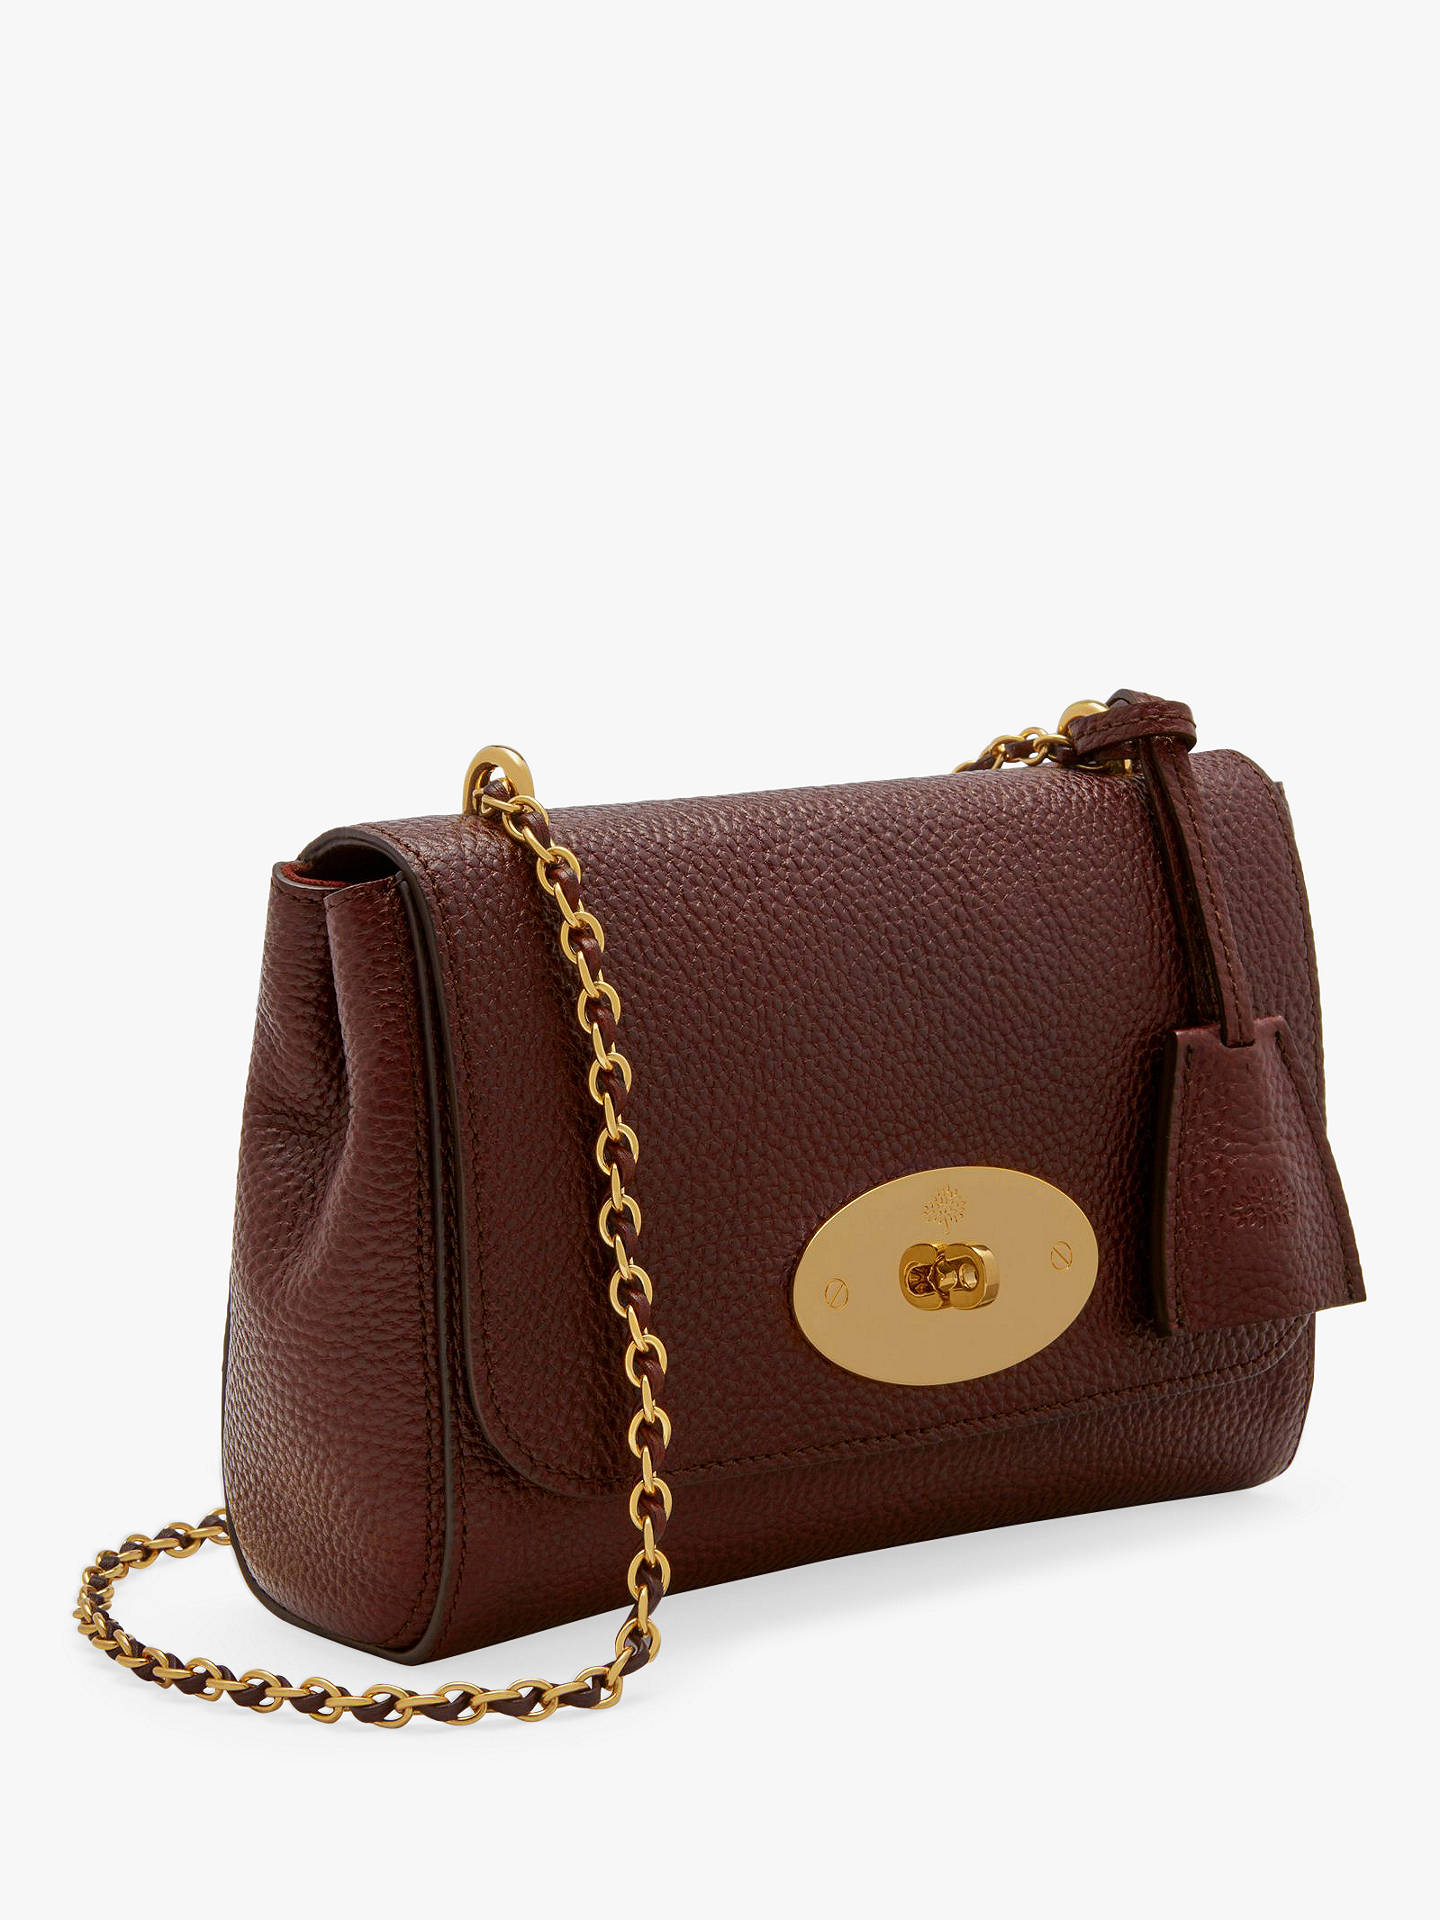 a2a55455a413 Mulberry Lily Classic Grain Leather Shoulder Bag at John Lewis ...